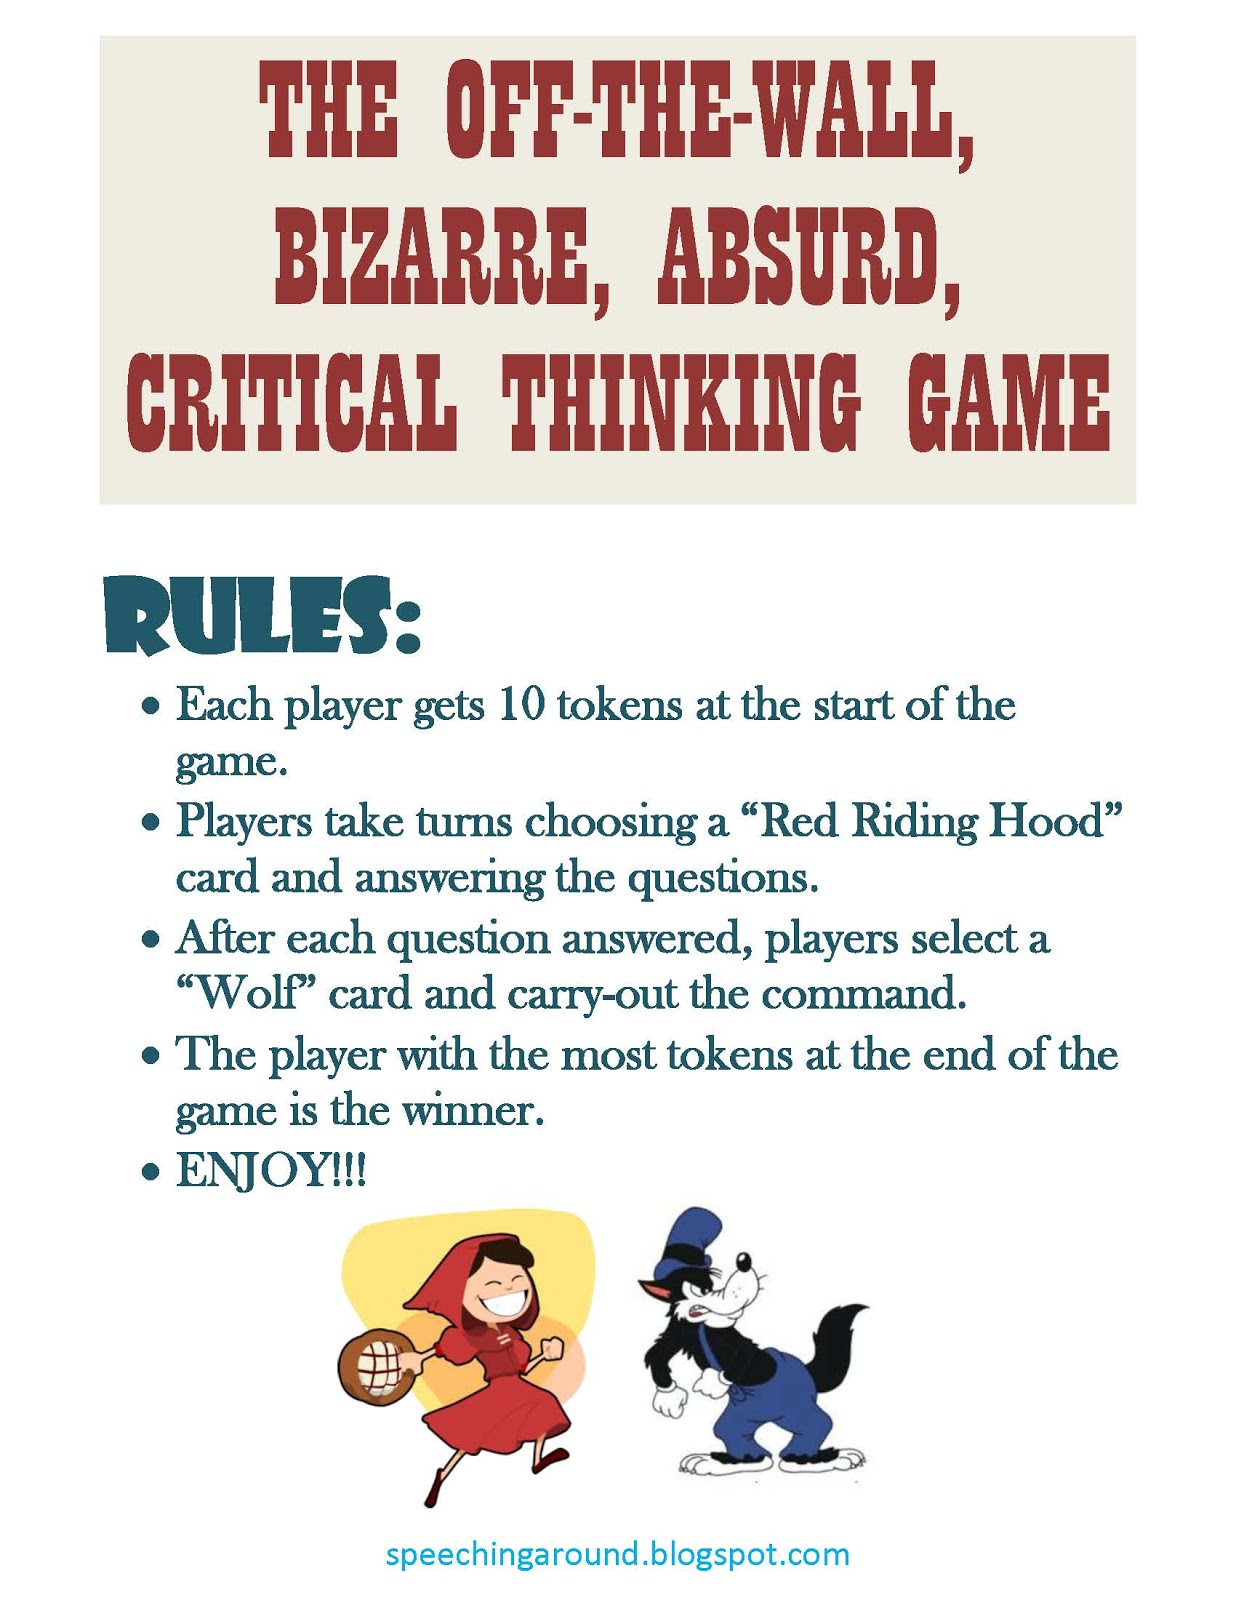 Showing Media & Posts for Funny critical thinking questions